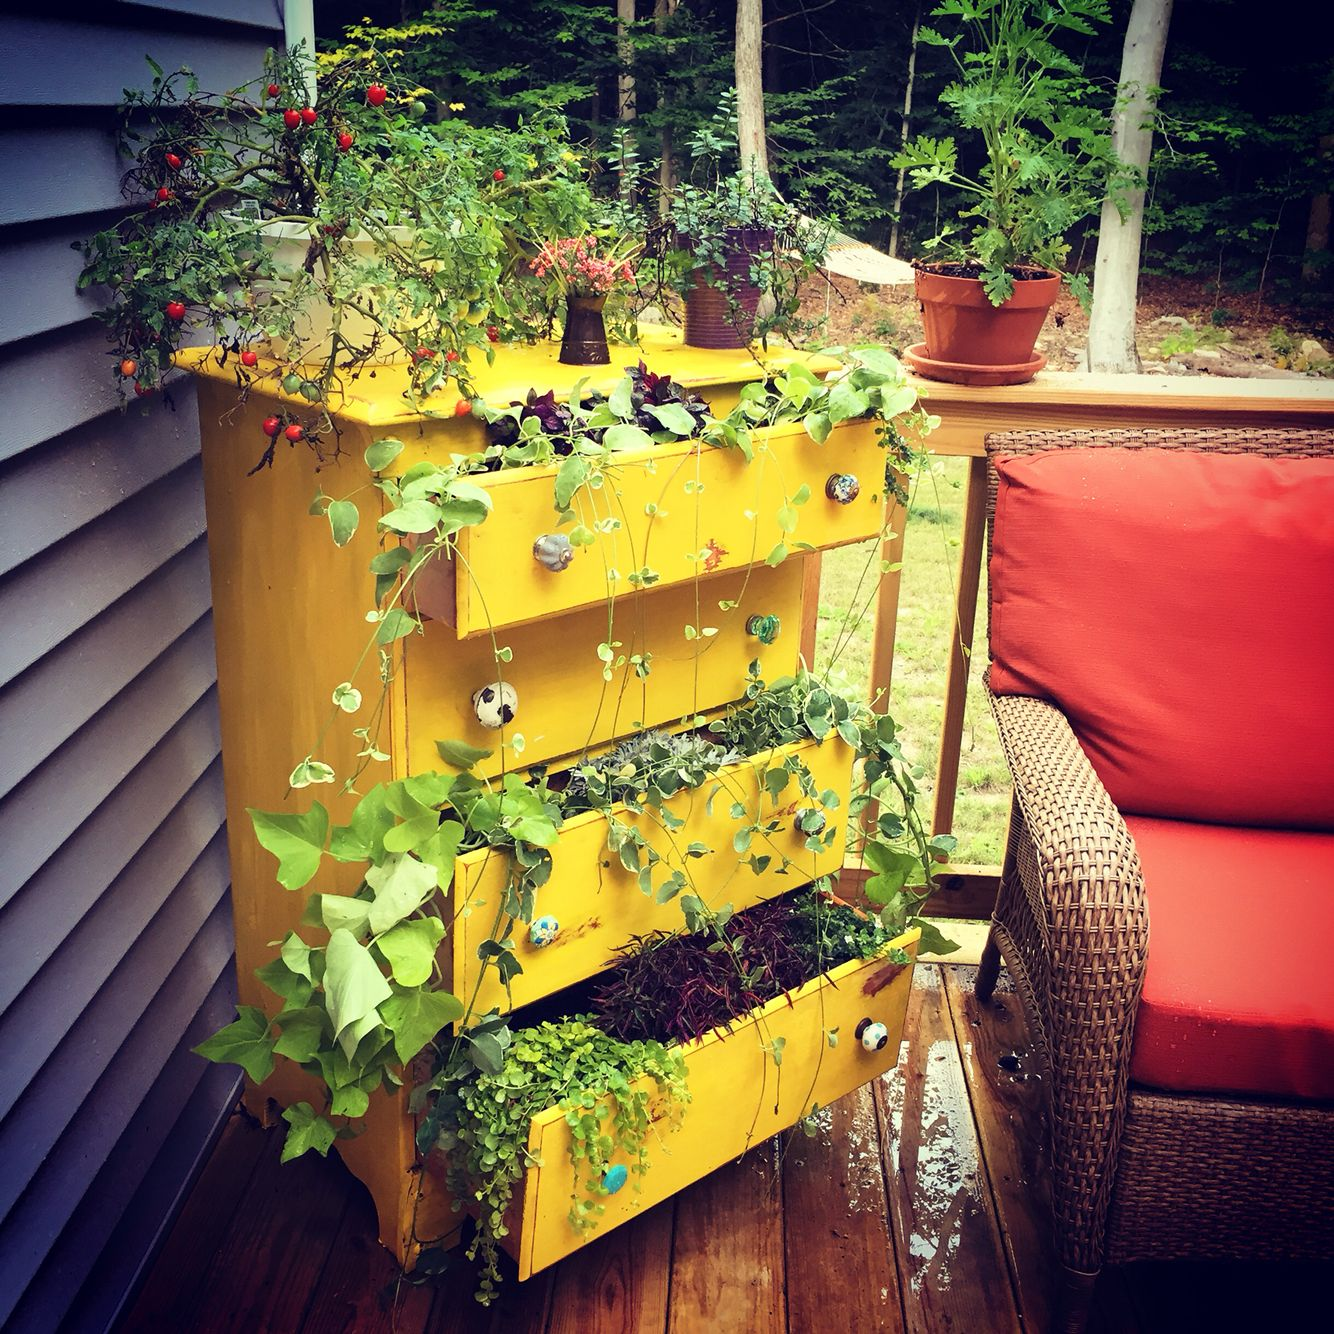 Creative Screened Porch Design Ideas: Refinished And Repurposed Dresser Made Into A Planter For